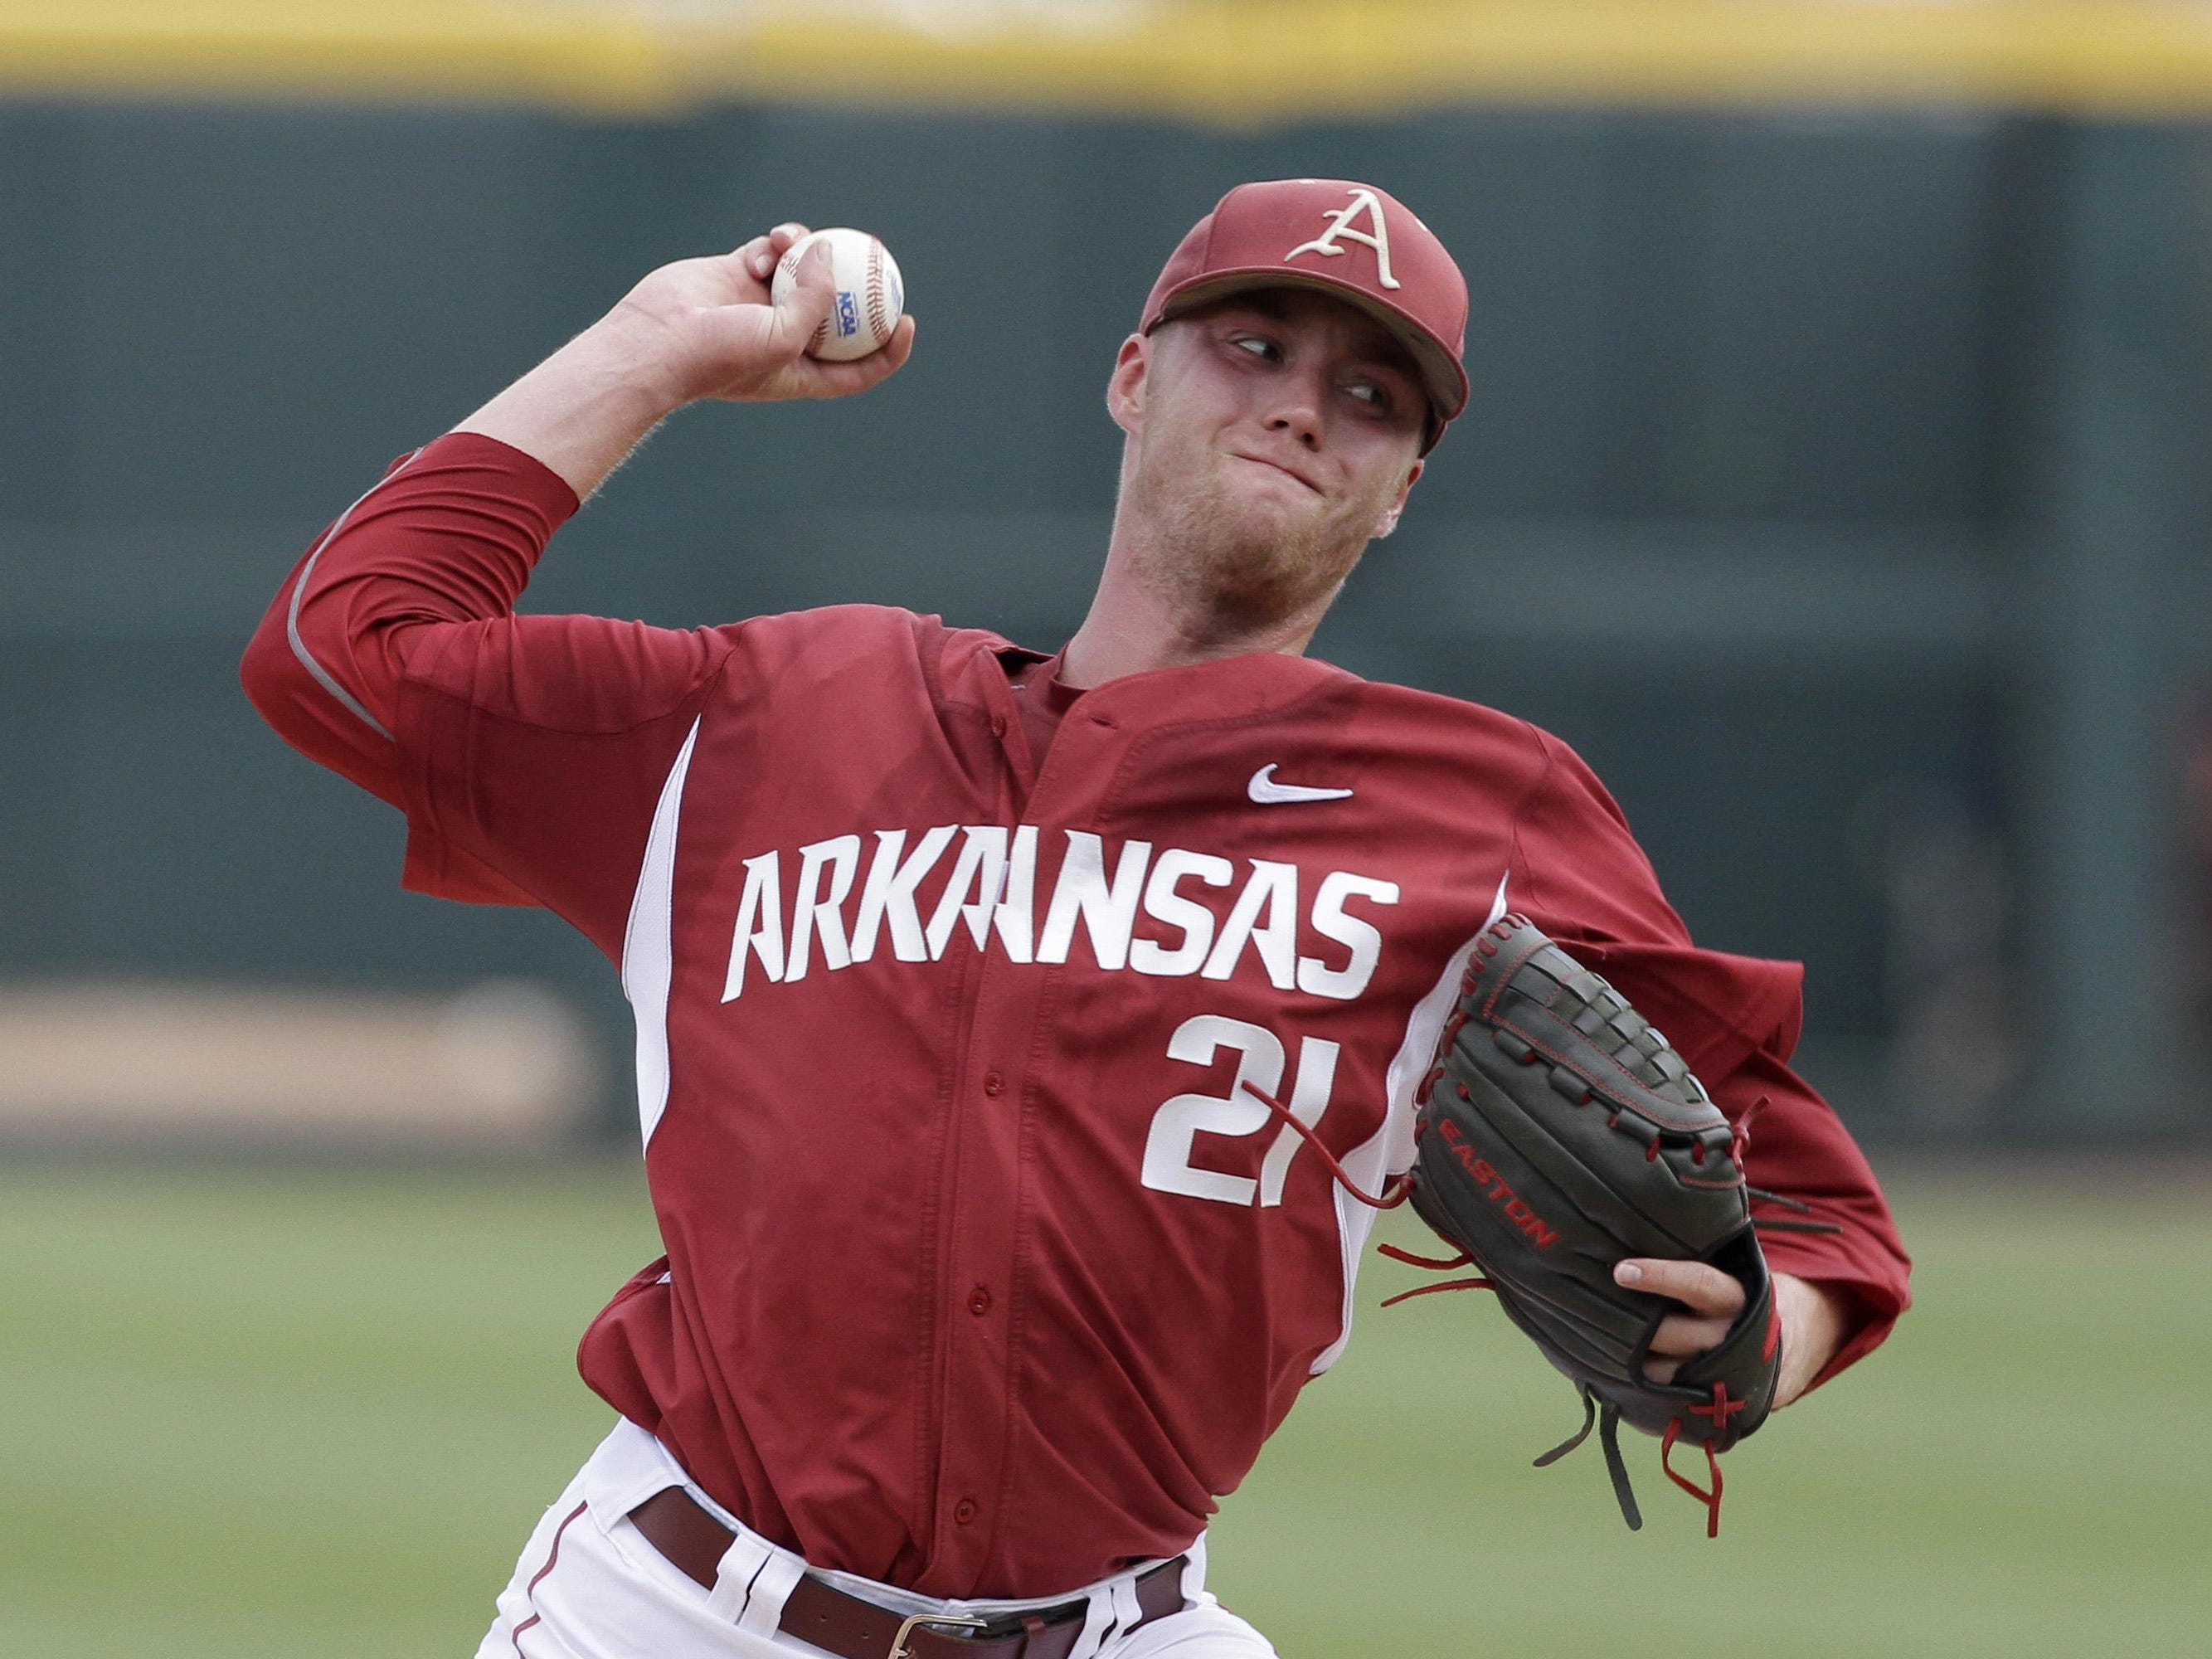 Trey Killian wasn't lights out, but the Mountain Home High grad was more than good enough, allowing three runs over six innings as Arkansas walloped No. 8 national seed Missouri State, 18-4, on Friday at jam-packed Baum Stadium to take command of their Super Regional series.